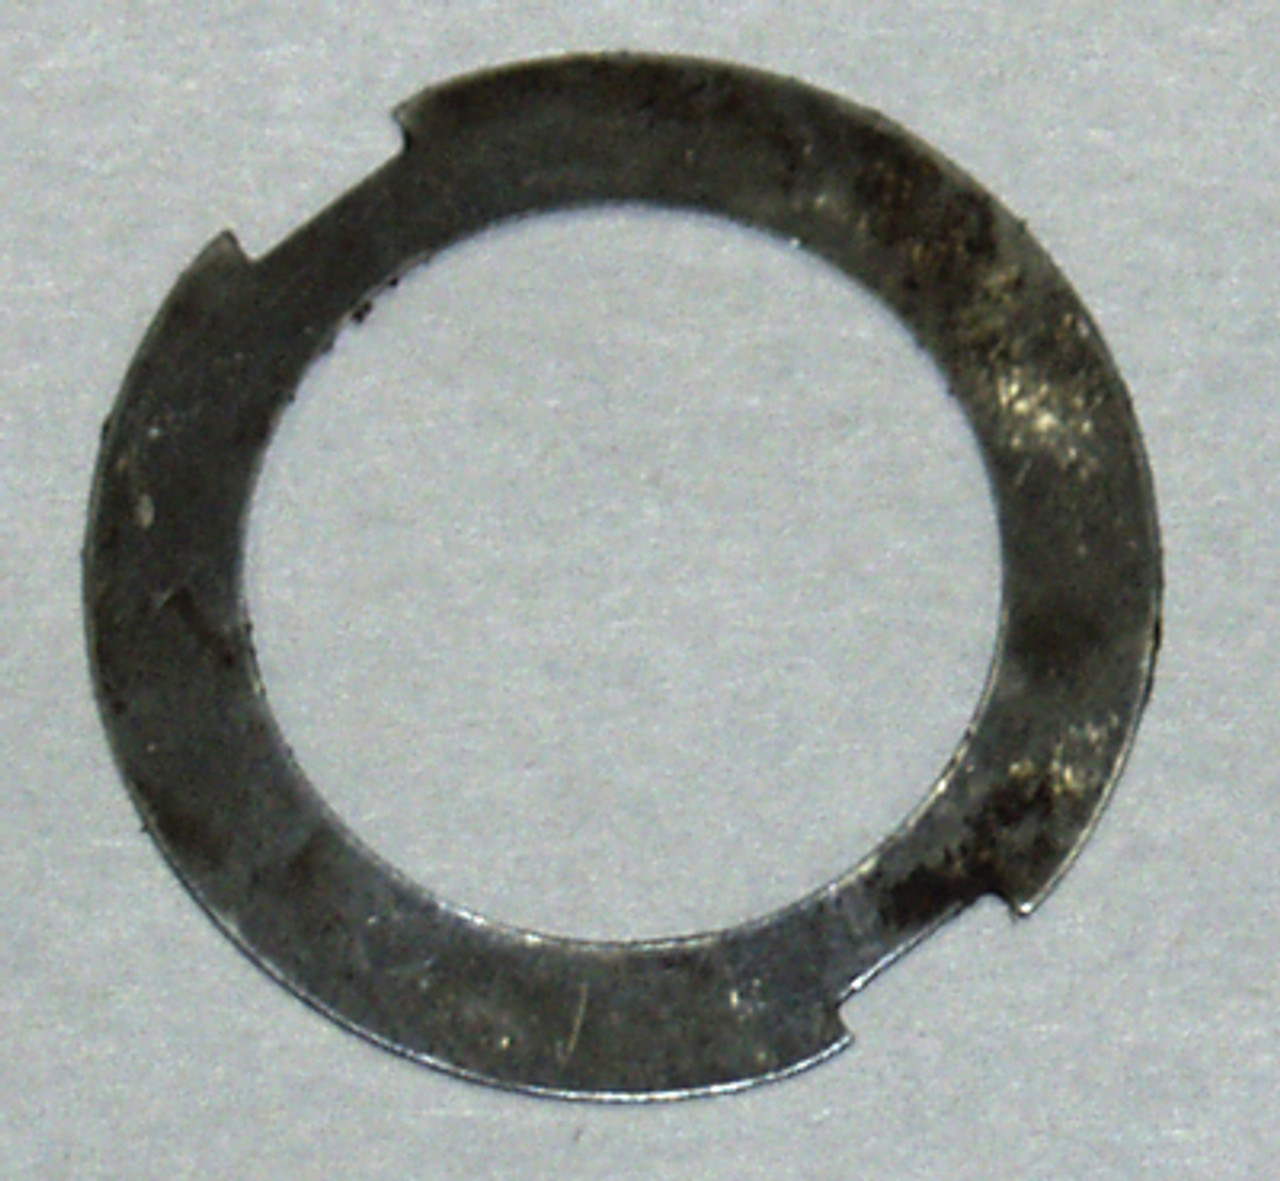 Vickers Tripod Elevating Nut Washer